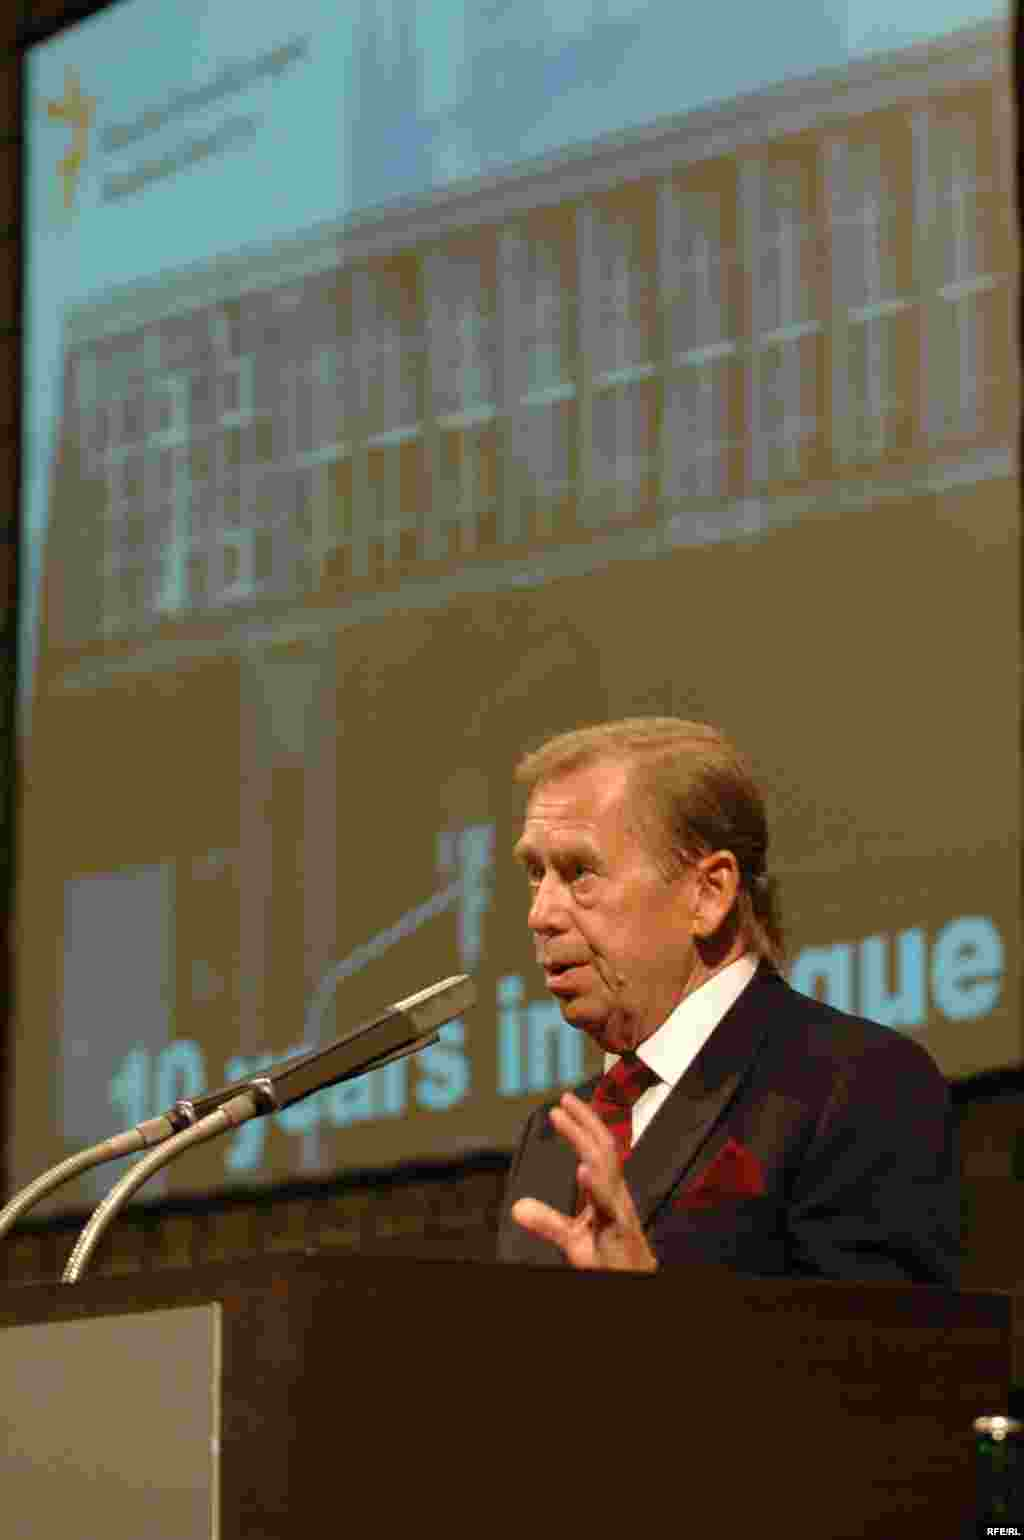 Czechoslovak President Vaclav Havel speaks at the 10th anniversary of RFE/RL's headquarters in Prague, 2005.